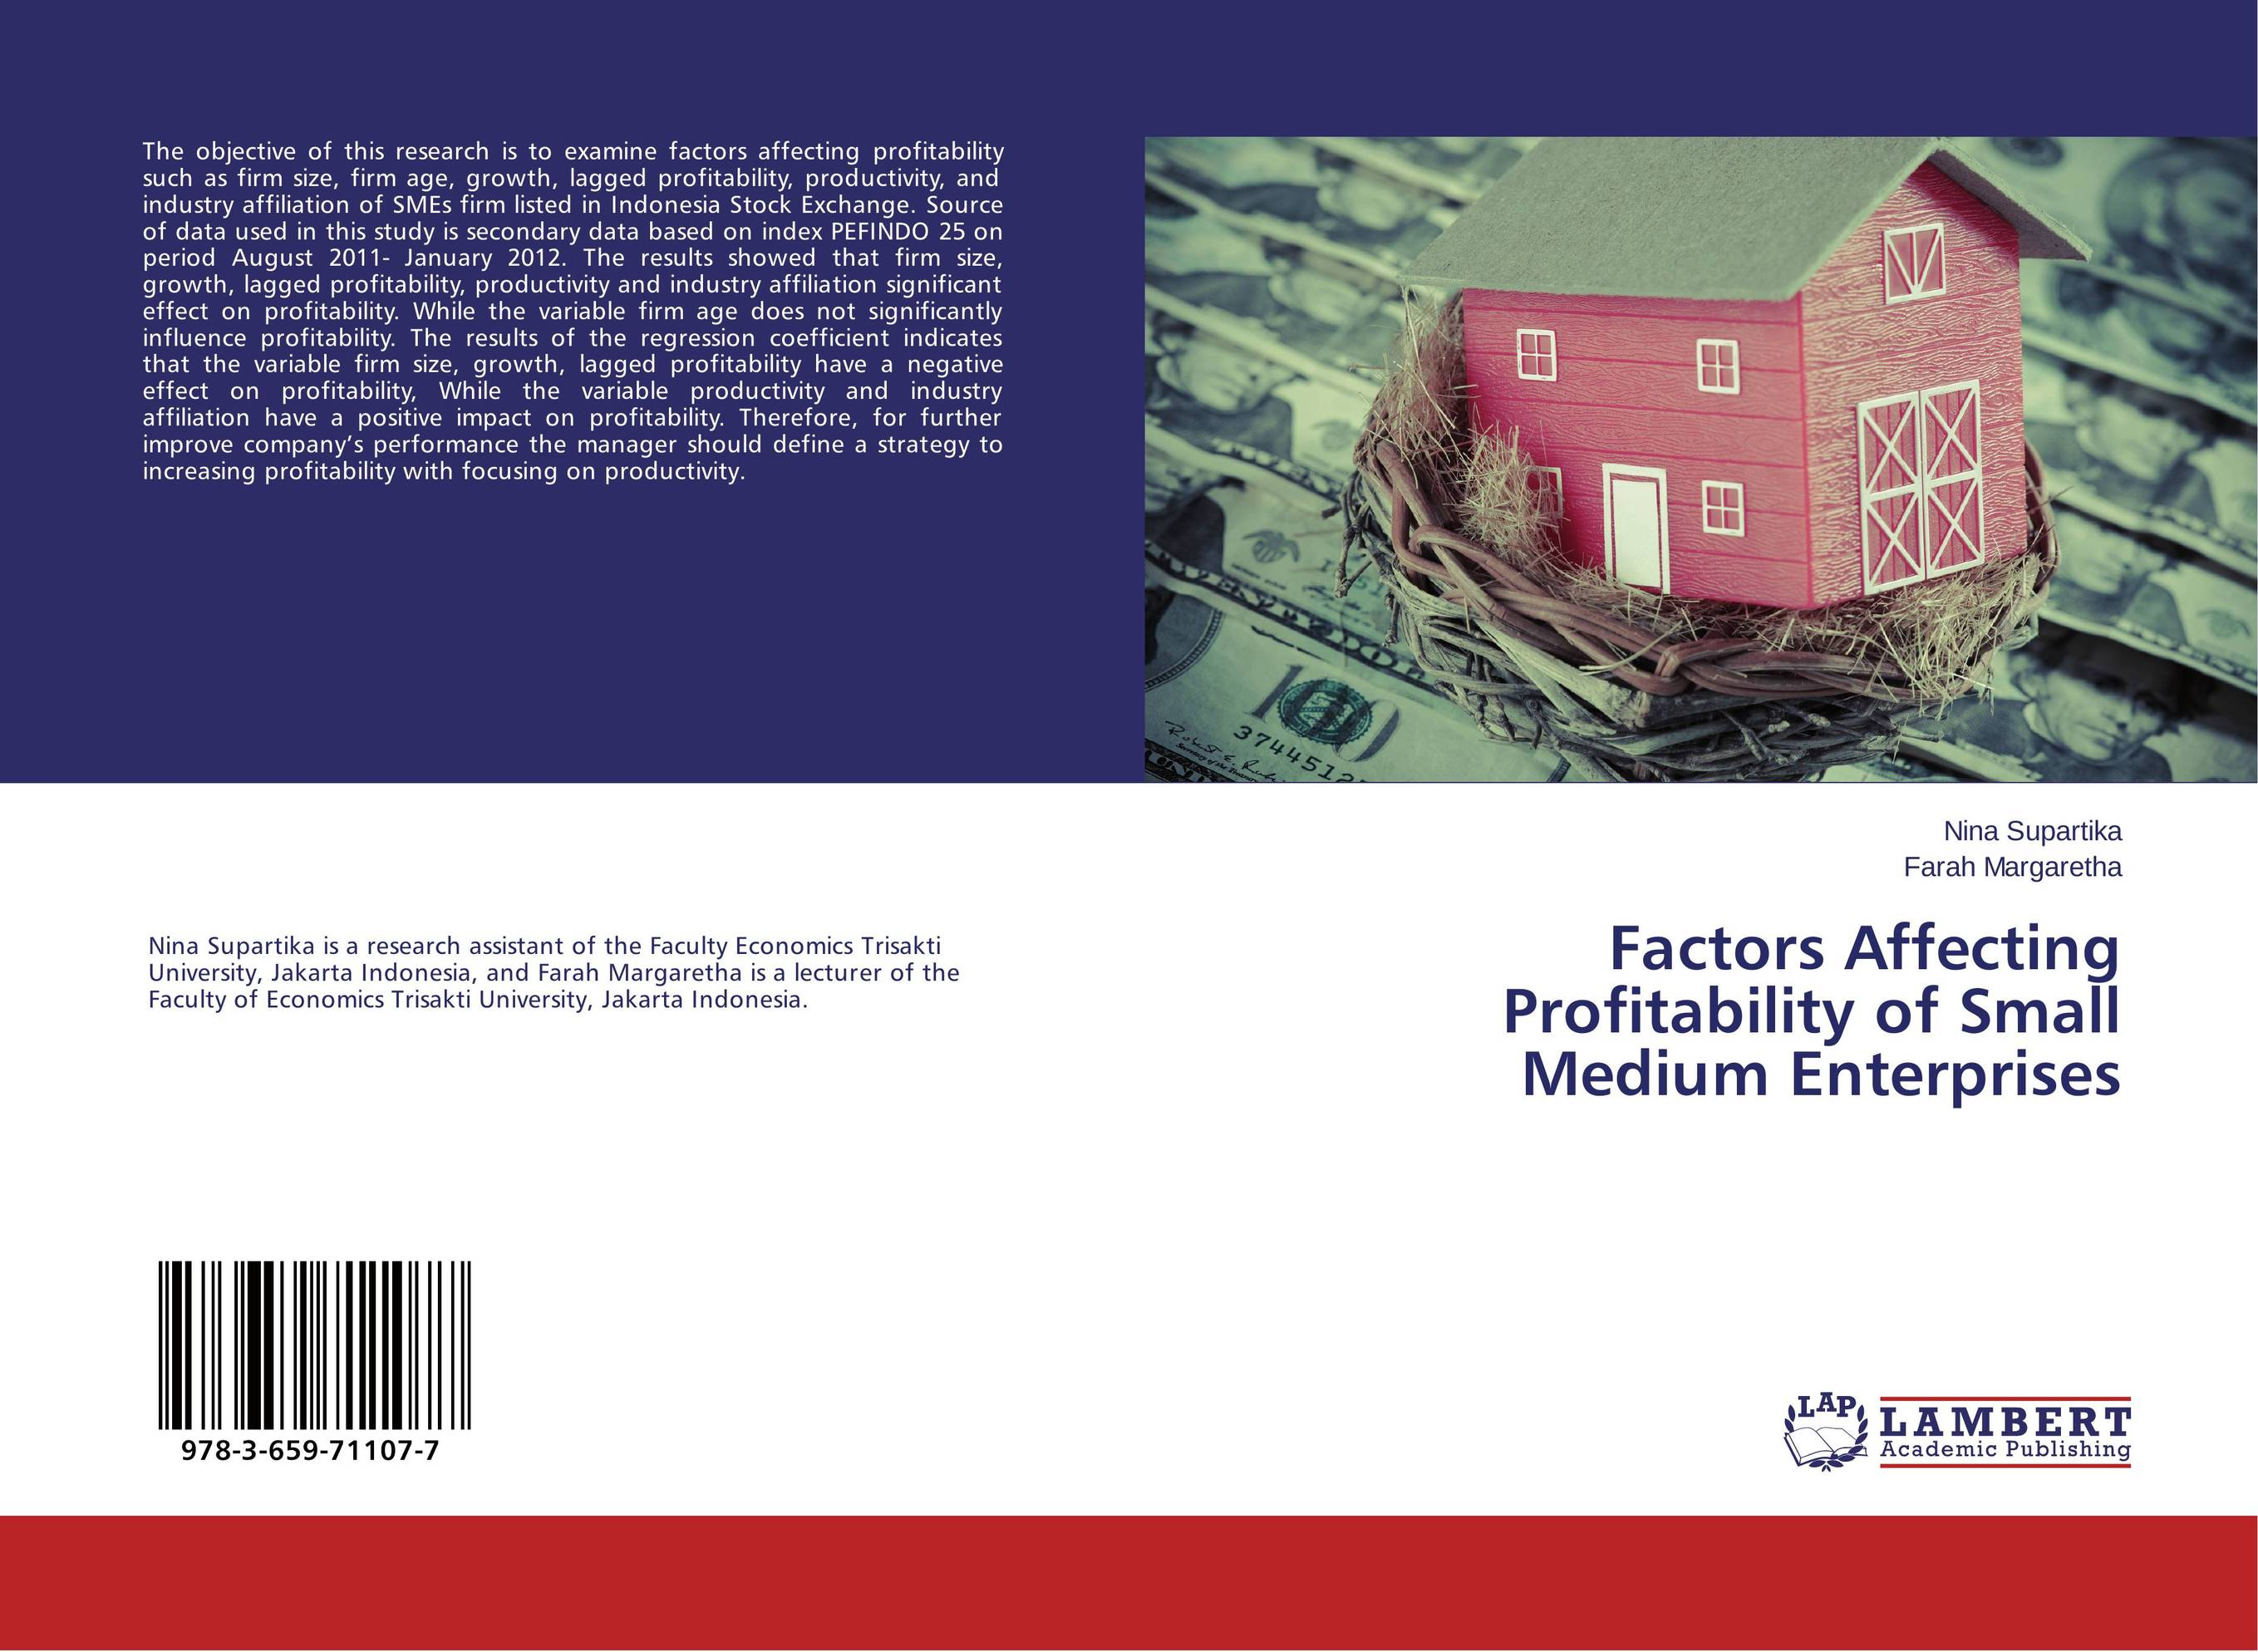 Factors Affecting Profitability of Small Medium Enterprises corporate governance and firm value